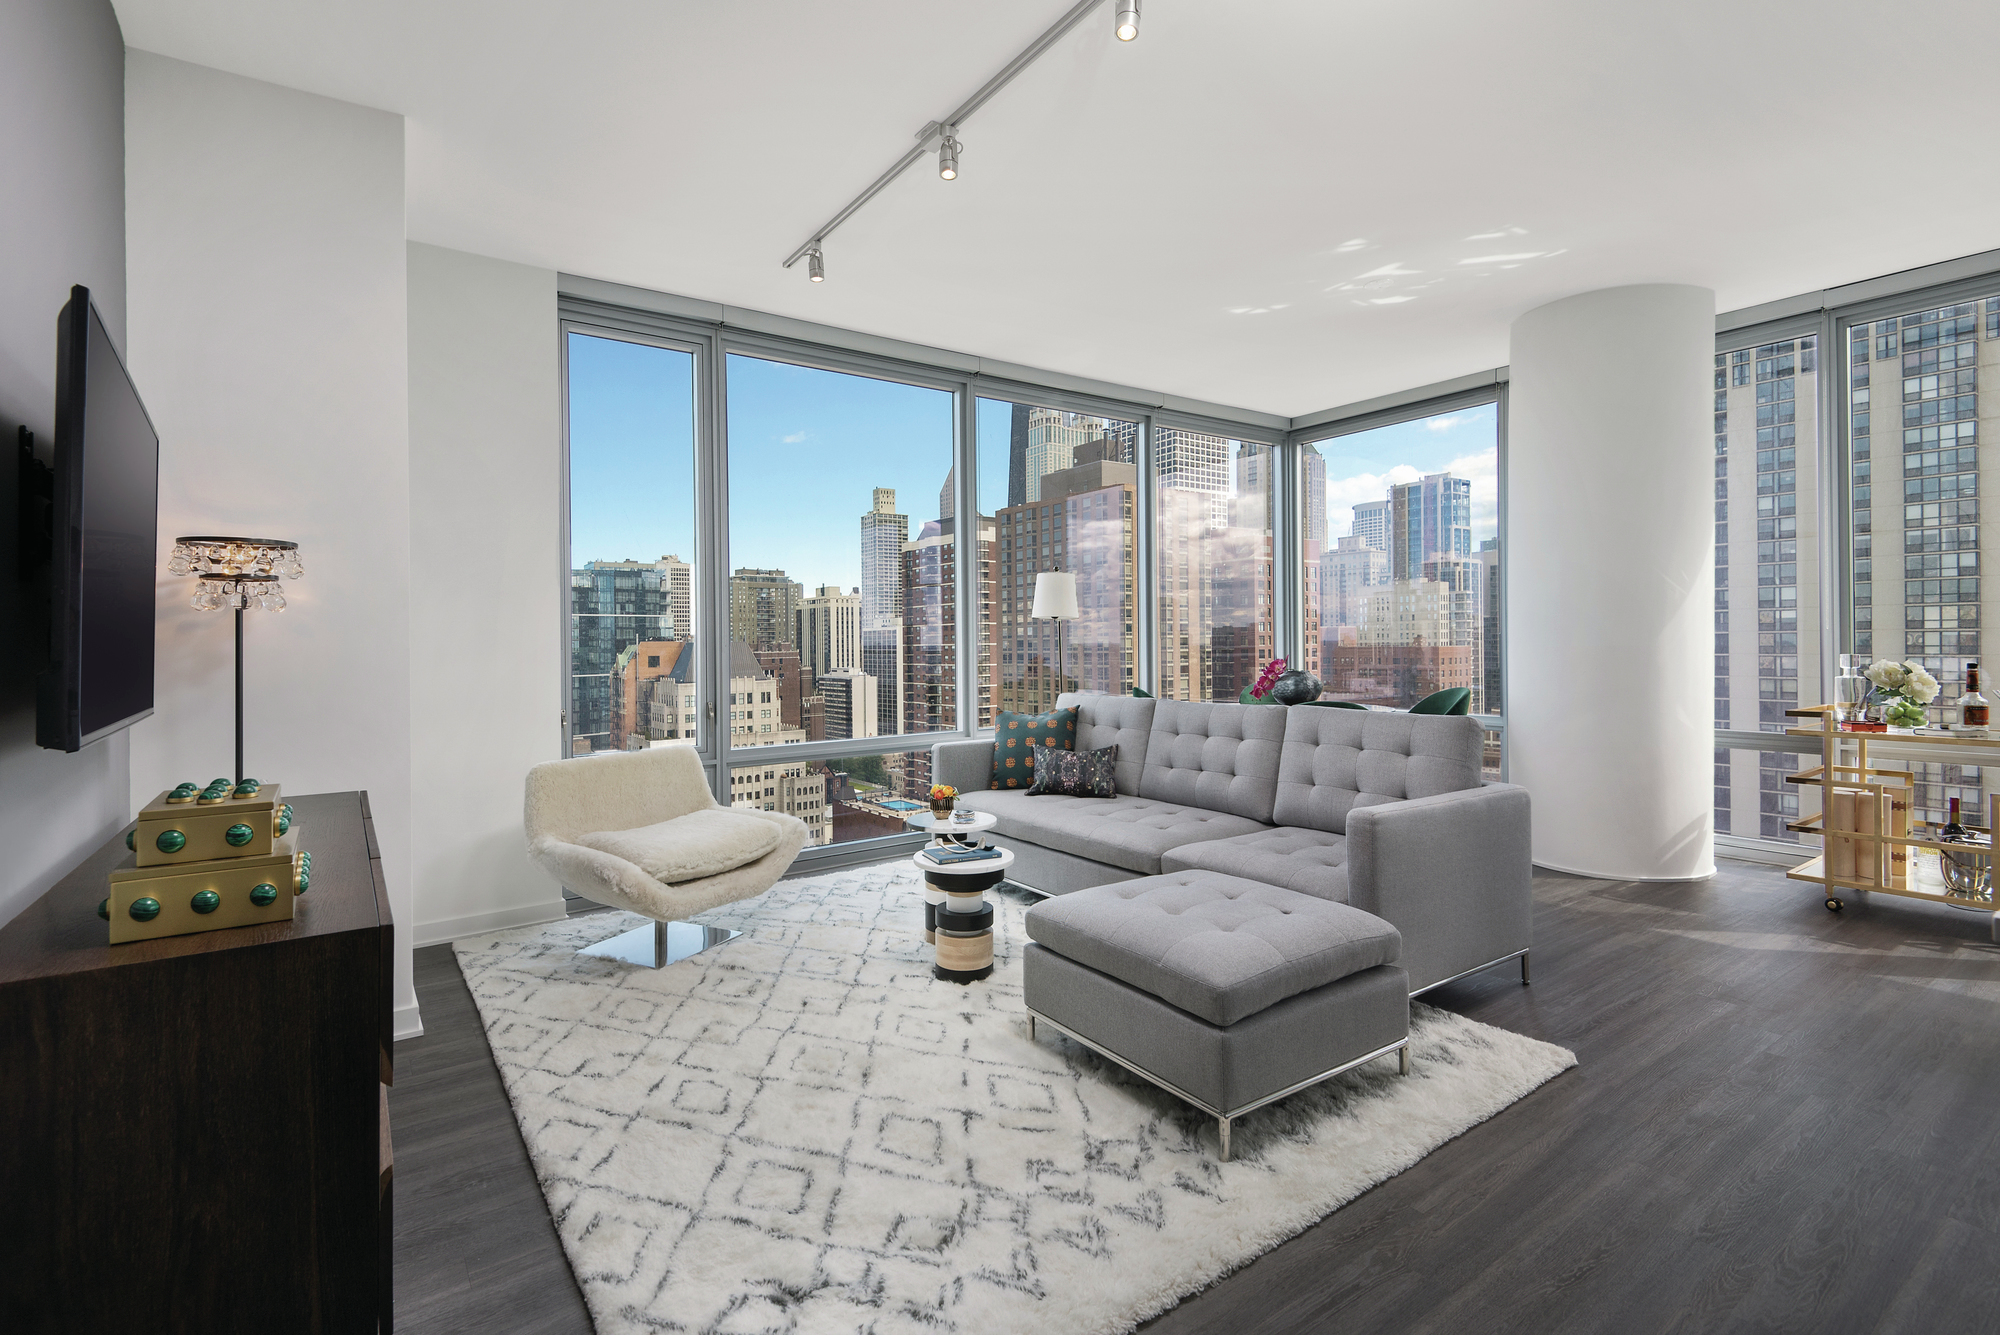 Luxury Sinclair Apartments Open in Chicagos Gold Coast